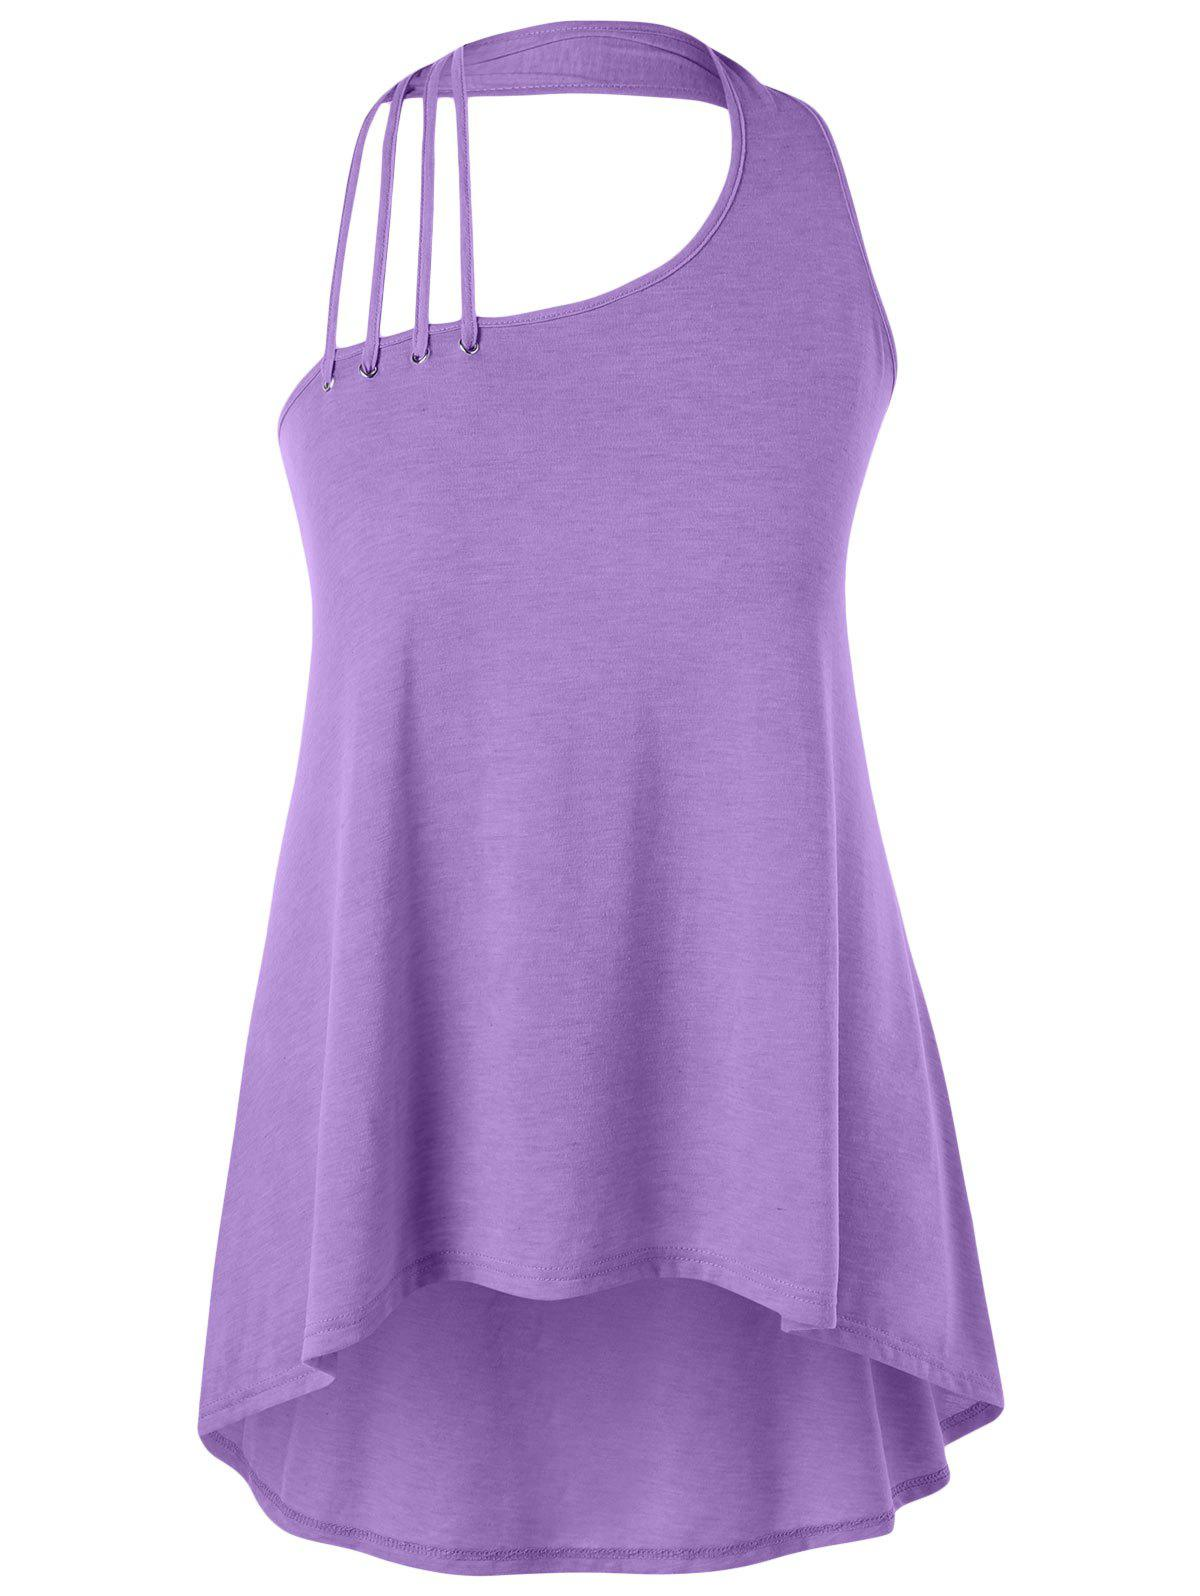 Plus Size Strappy Halter Neck High Low Tank Top plus size strappy halter neck tank top